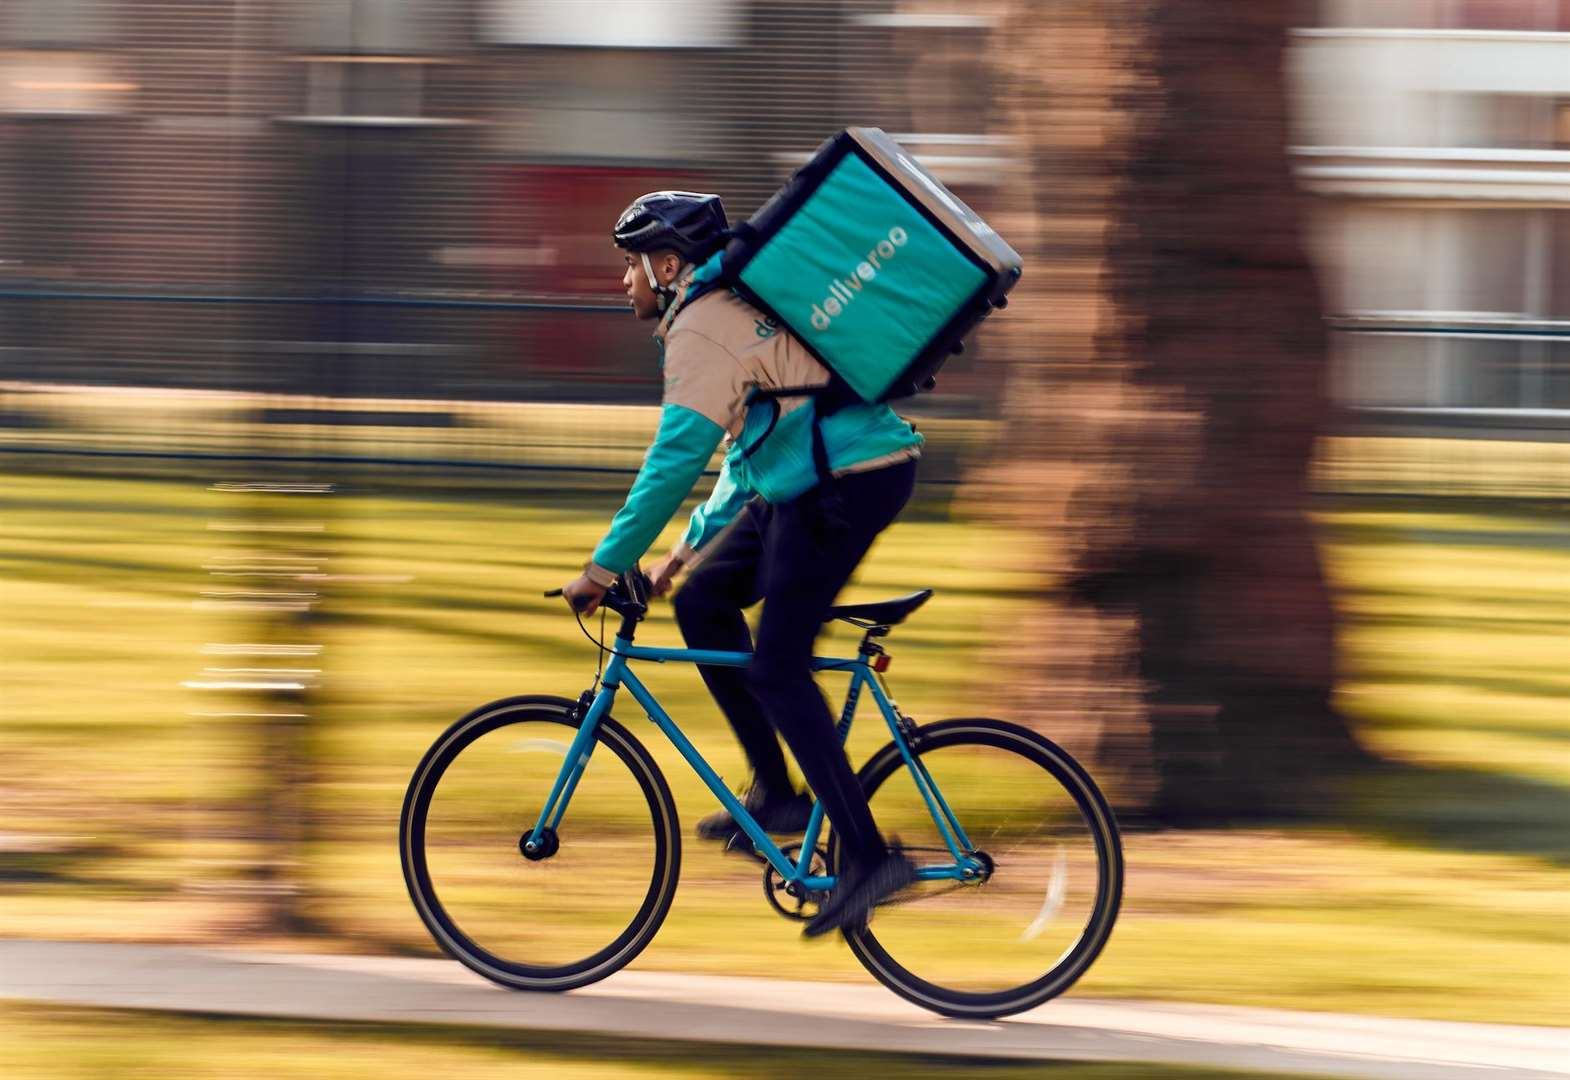 Deliveroo launches in latest towns